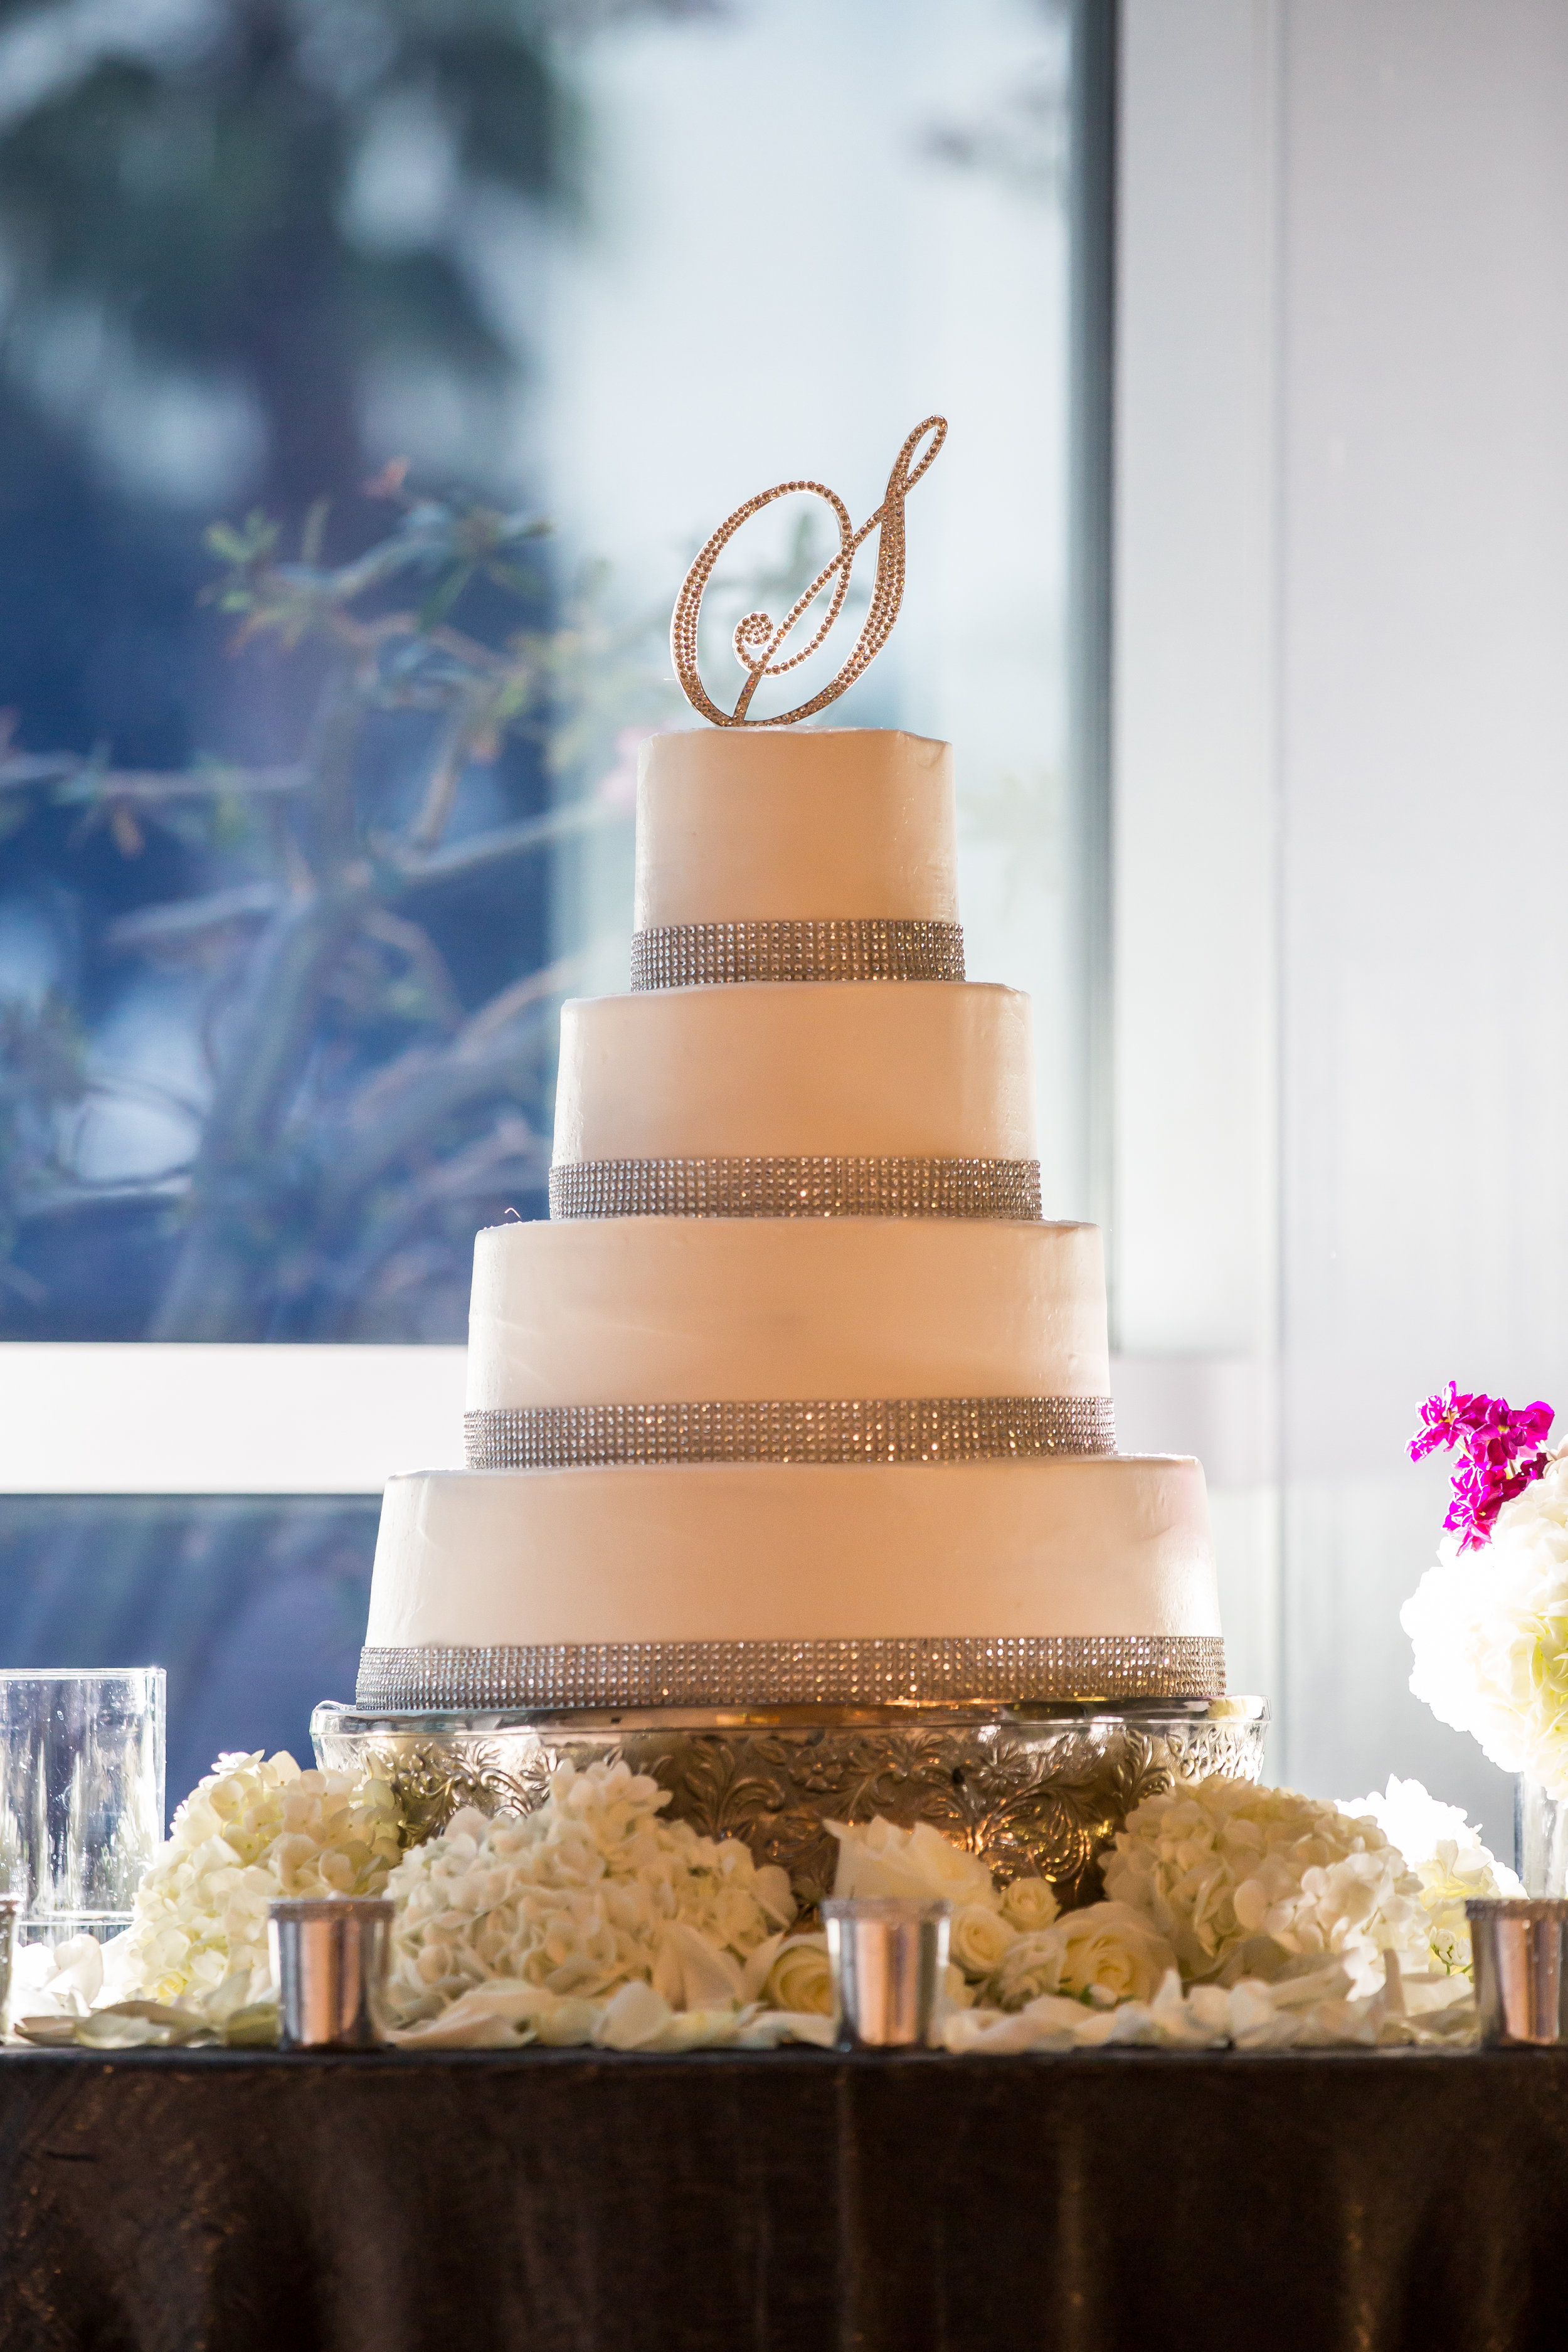 Guests enjoyed chef-attended food stations as well as a decadent chocolate fountain and a four-tier buttercream wedding cake.